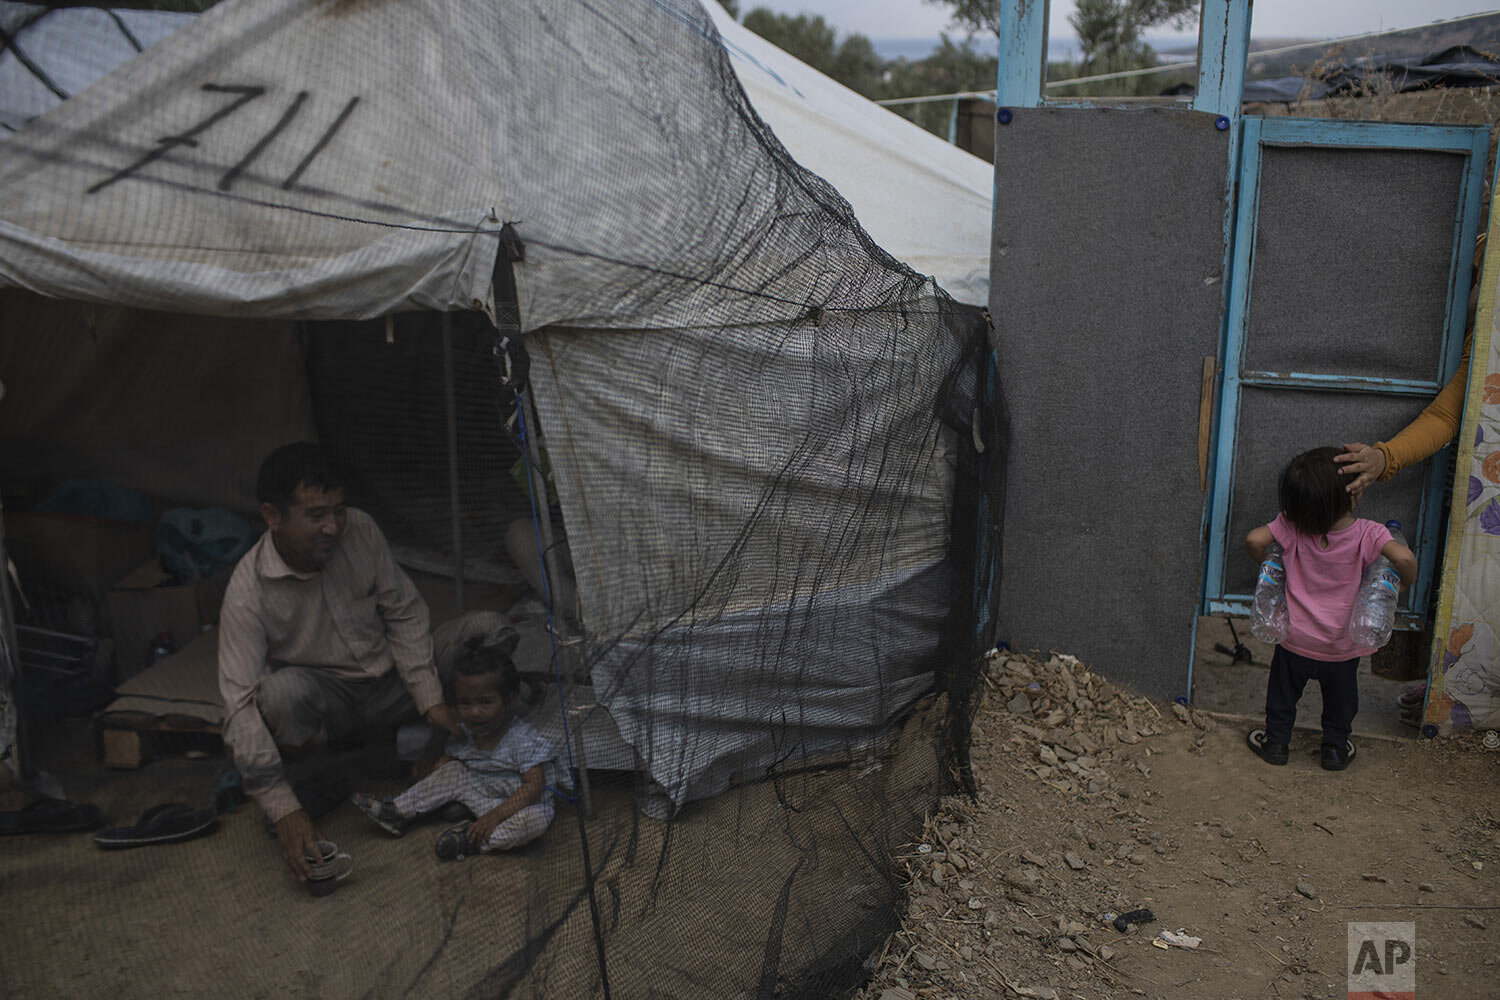 Abdul Hanoi, 38, from Afghanistan, sits next to his daughter Yesna outside their tent in a makeshift refugee and migrant camp on the fringes of the overcrowded Moria camp on the Greek island of Lesbos, Friday Oct. 4, 2019. (AP Photo/Petros Giannakouris)